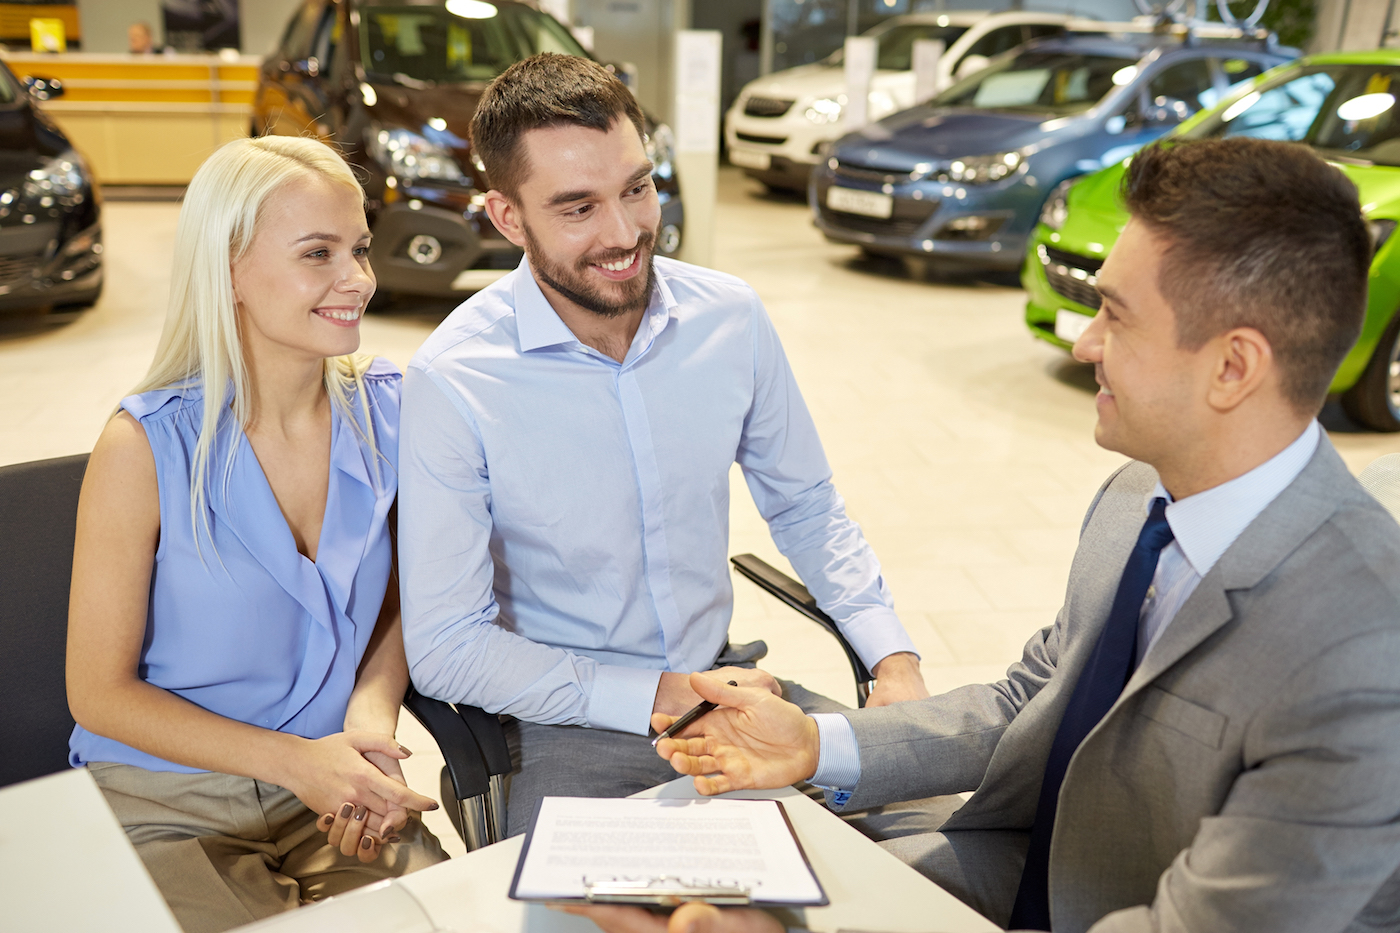 Used Car Loans After Repossession for the People in Temple Hills at Auto Giants